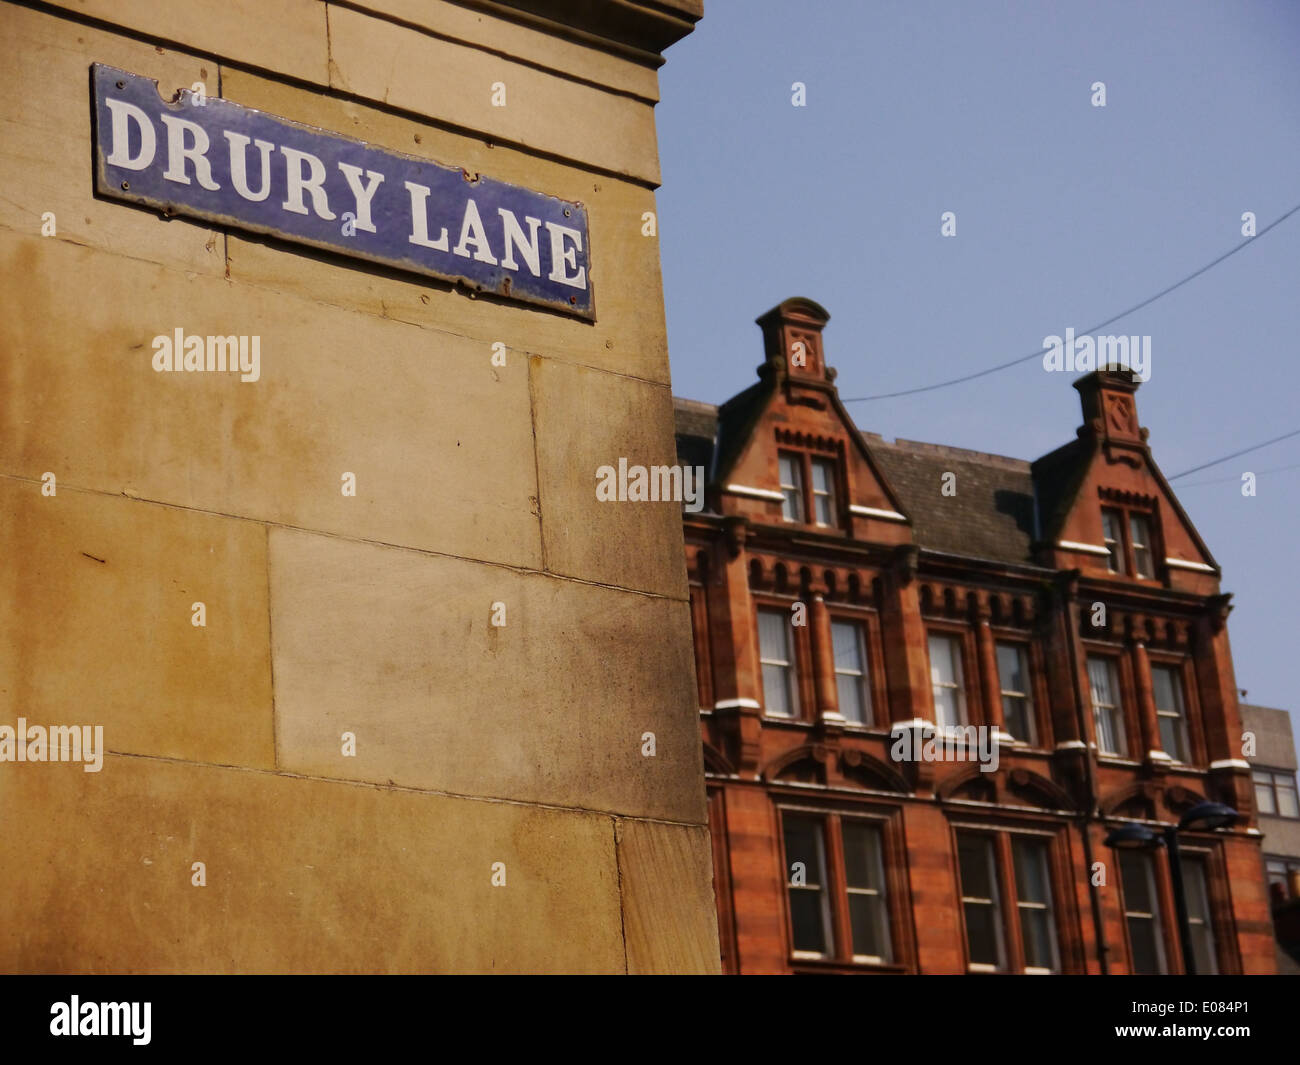 Drury Lane sign and architectural detail of historic Churchill building in Dean Street, Newcastle upon Tyne, England, UK - Stock Image